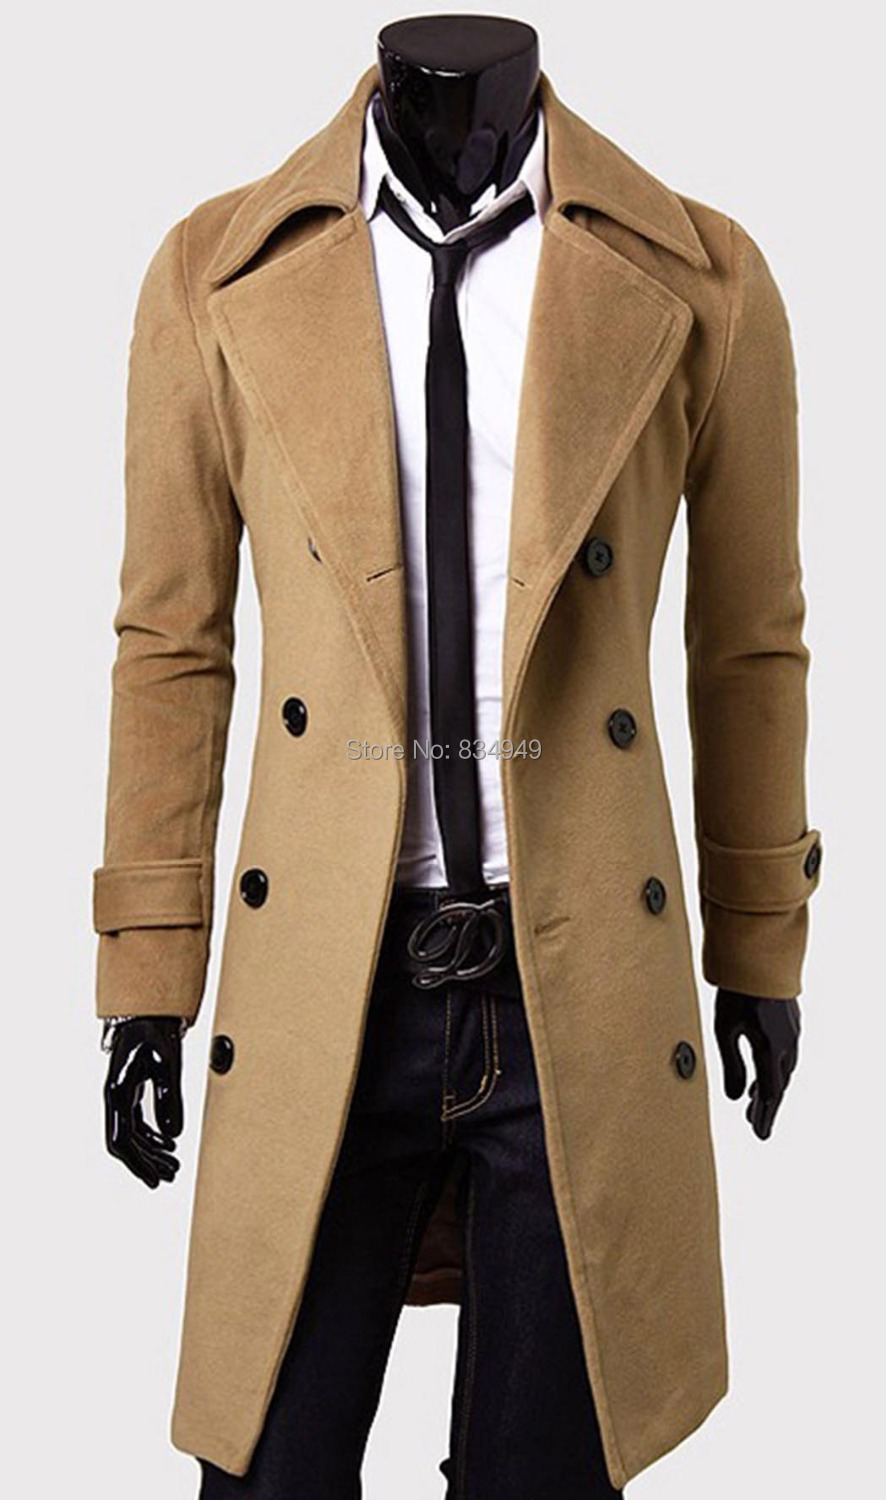 Compare Prices on Long Brown Cashmere Coat- Online Shopping/Buy